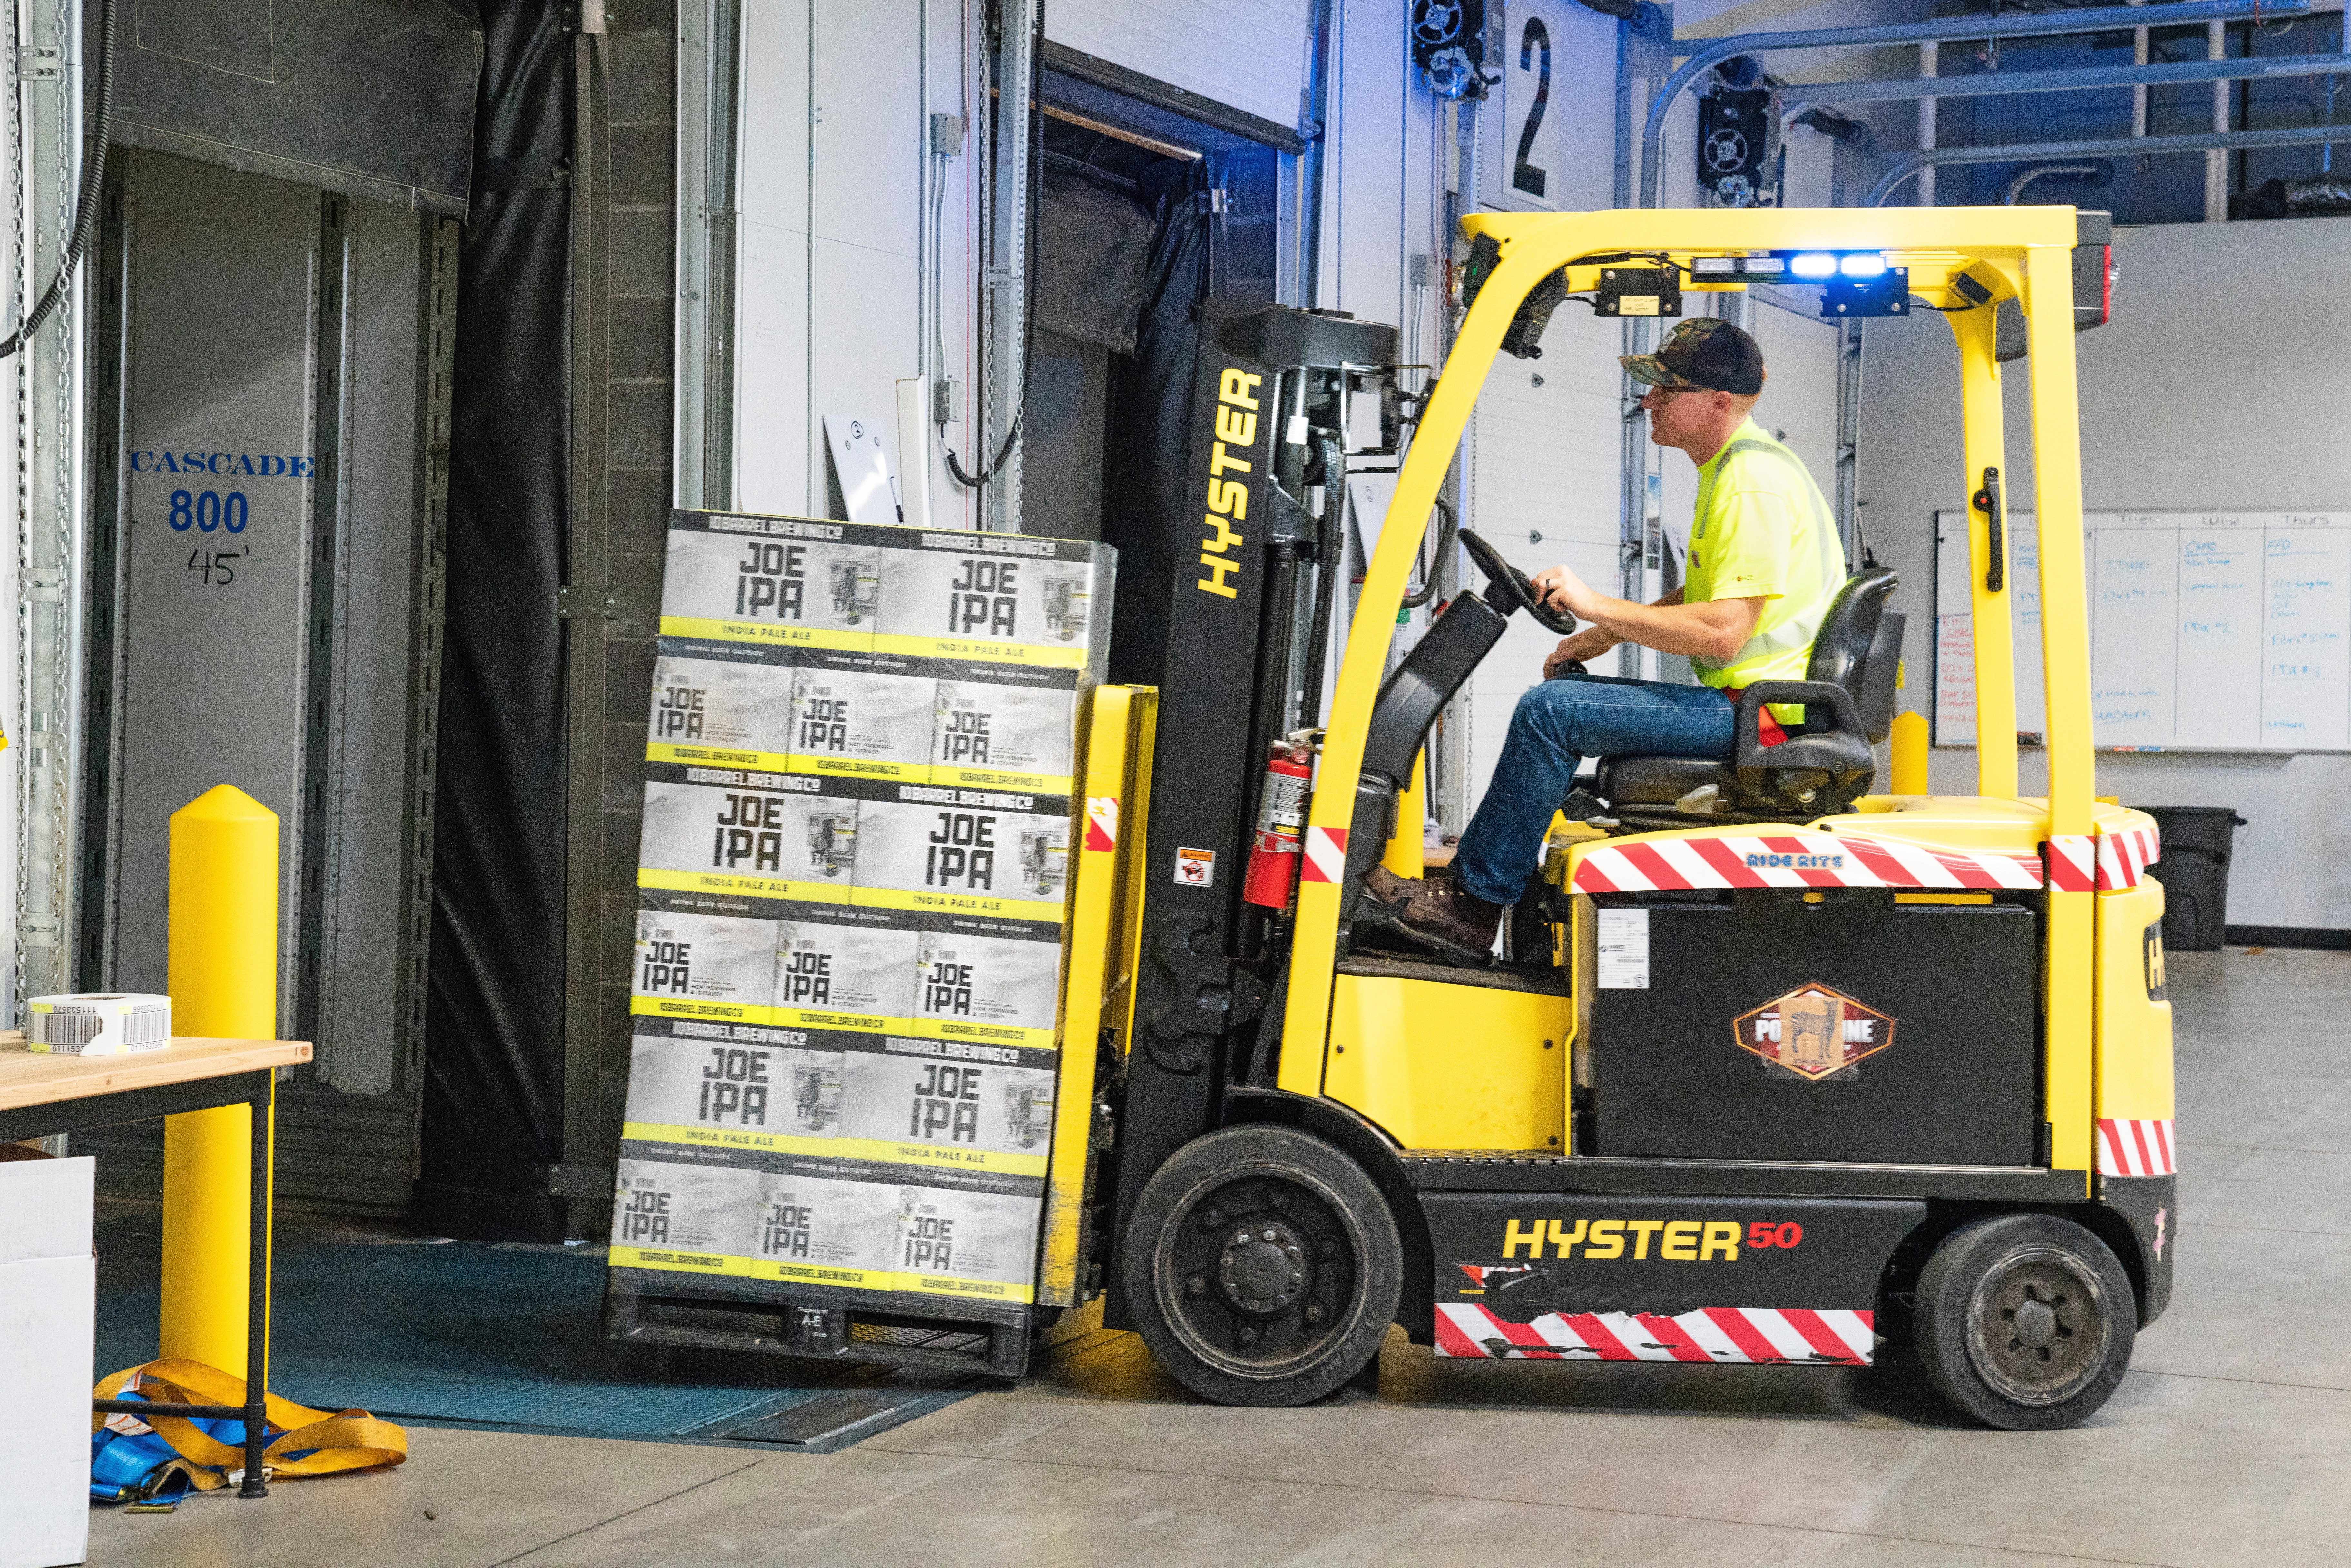 5 Must Haves Warehousing Technology - Are You Up to Date? | Whale Logistics Blog